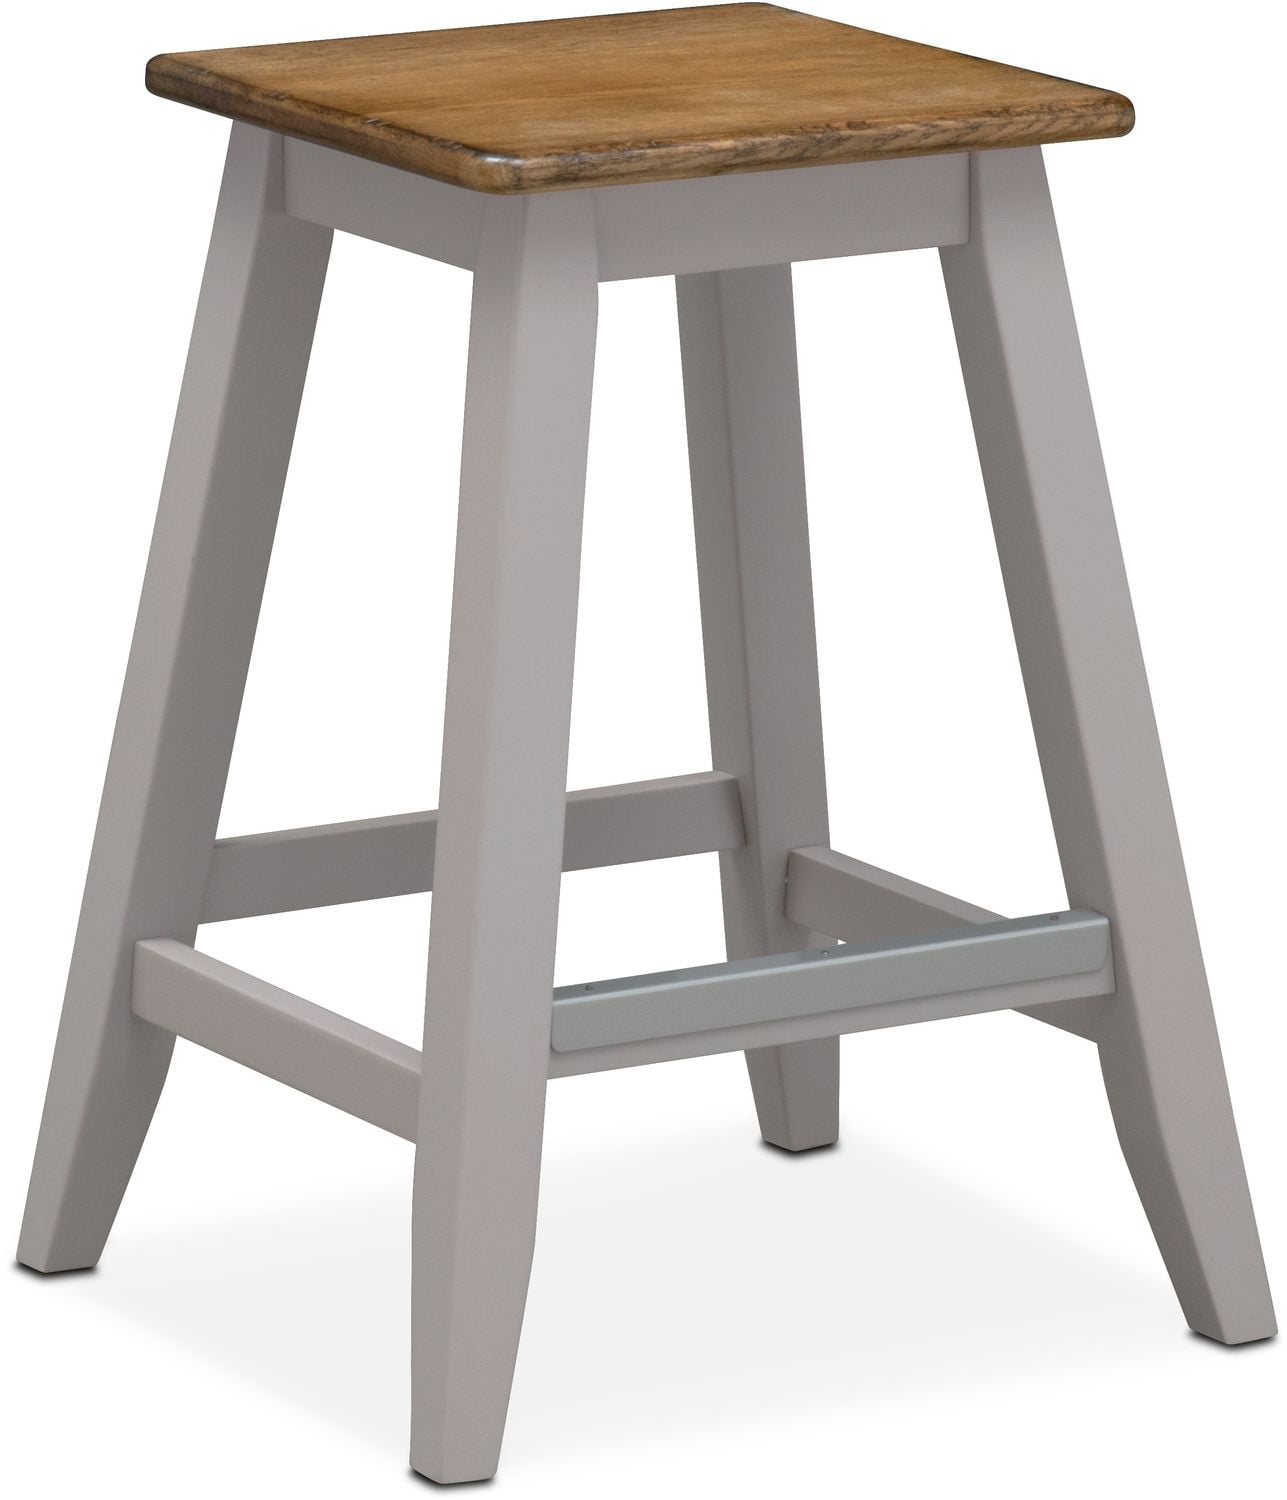 Merveilleux Nantucket Counter Height Stool   Oak And Gray